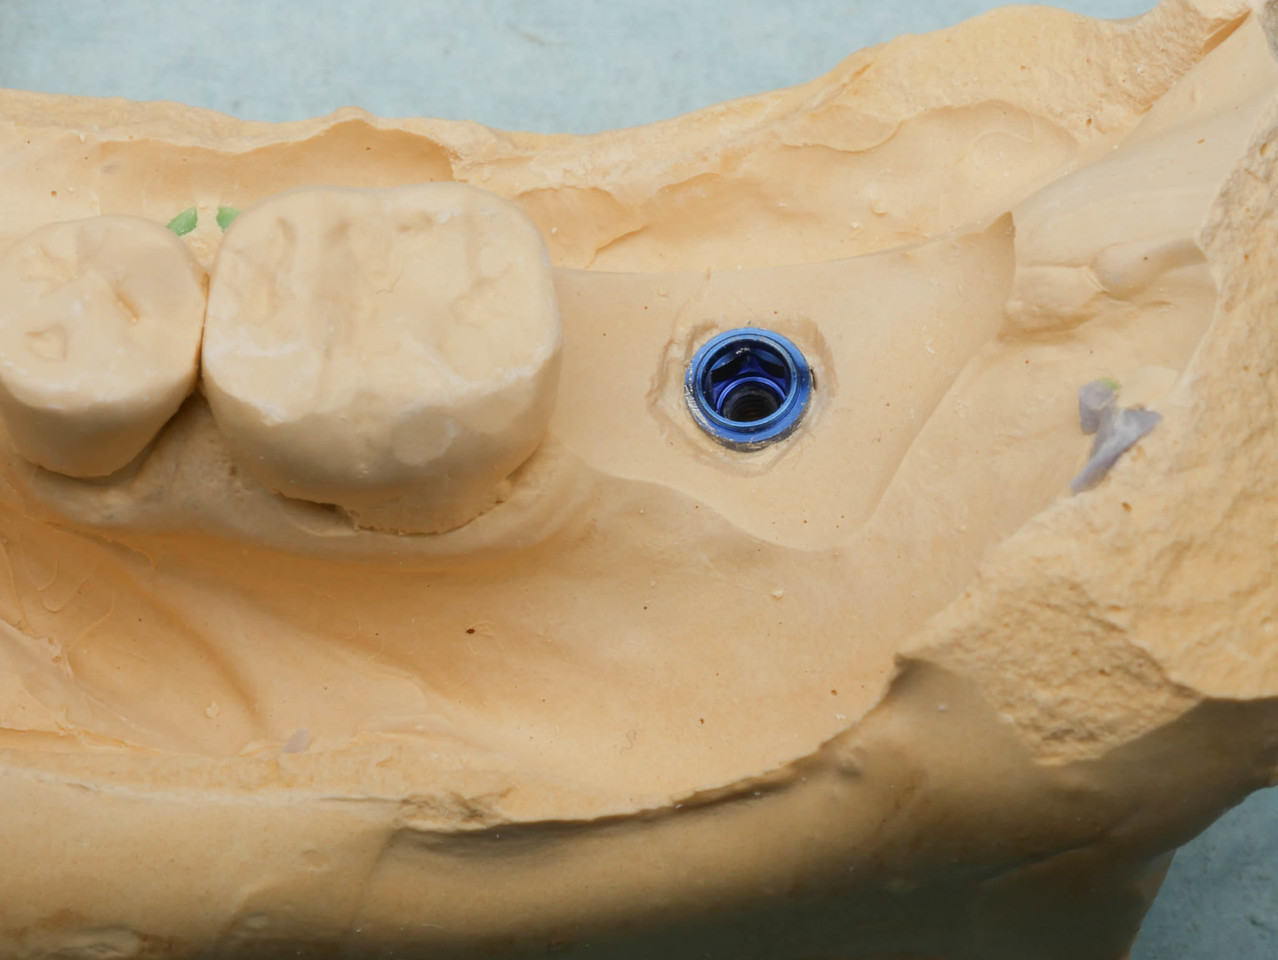 Gingival material was removed and the t-connect (not pictured) was attached to scan with the Cerec Omnicam.  Sweden Martina is not officially supported, but a similarly sized tibase was substituted.